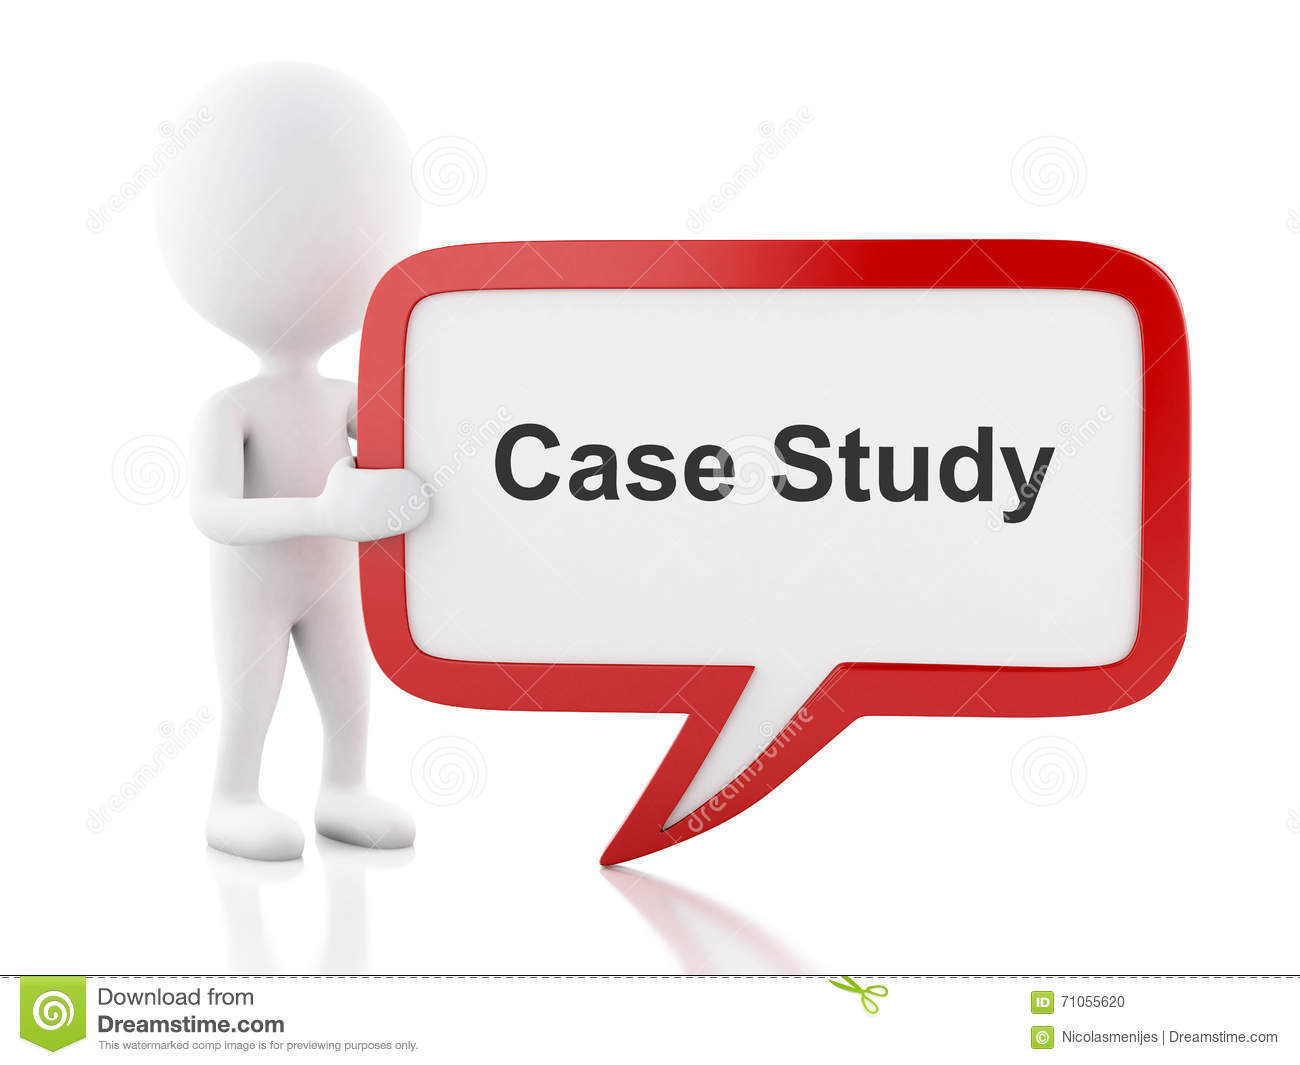 3d White people with speech bubble that says Case Study.